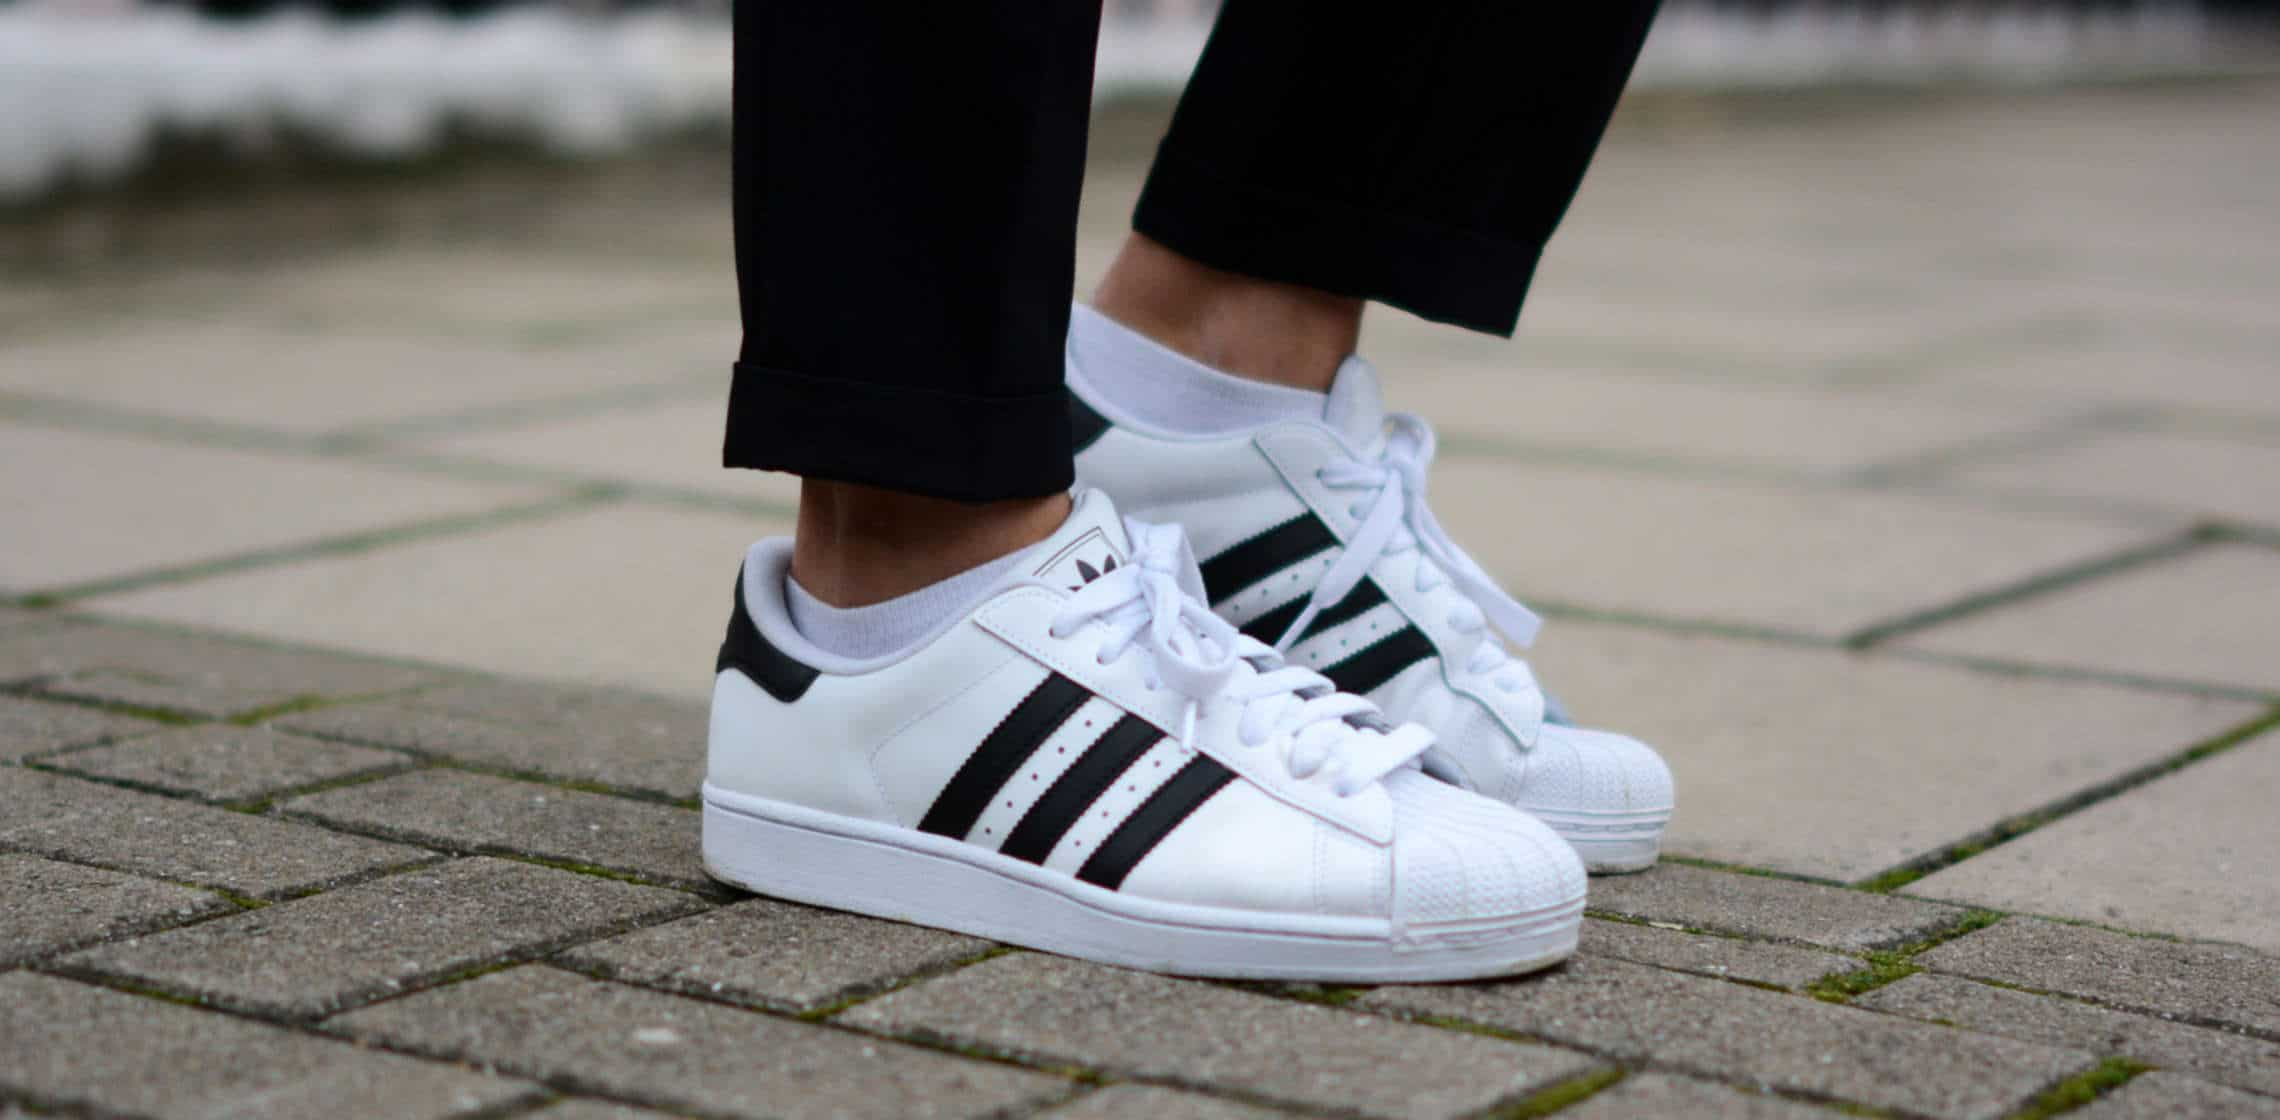 Shoes Similarb Adidas Superstar